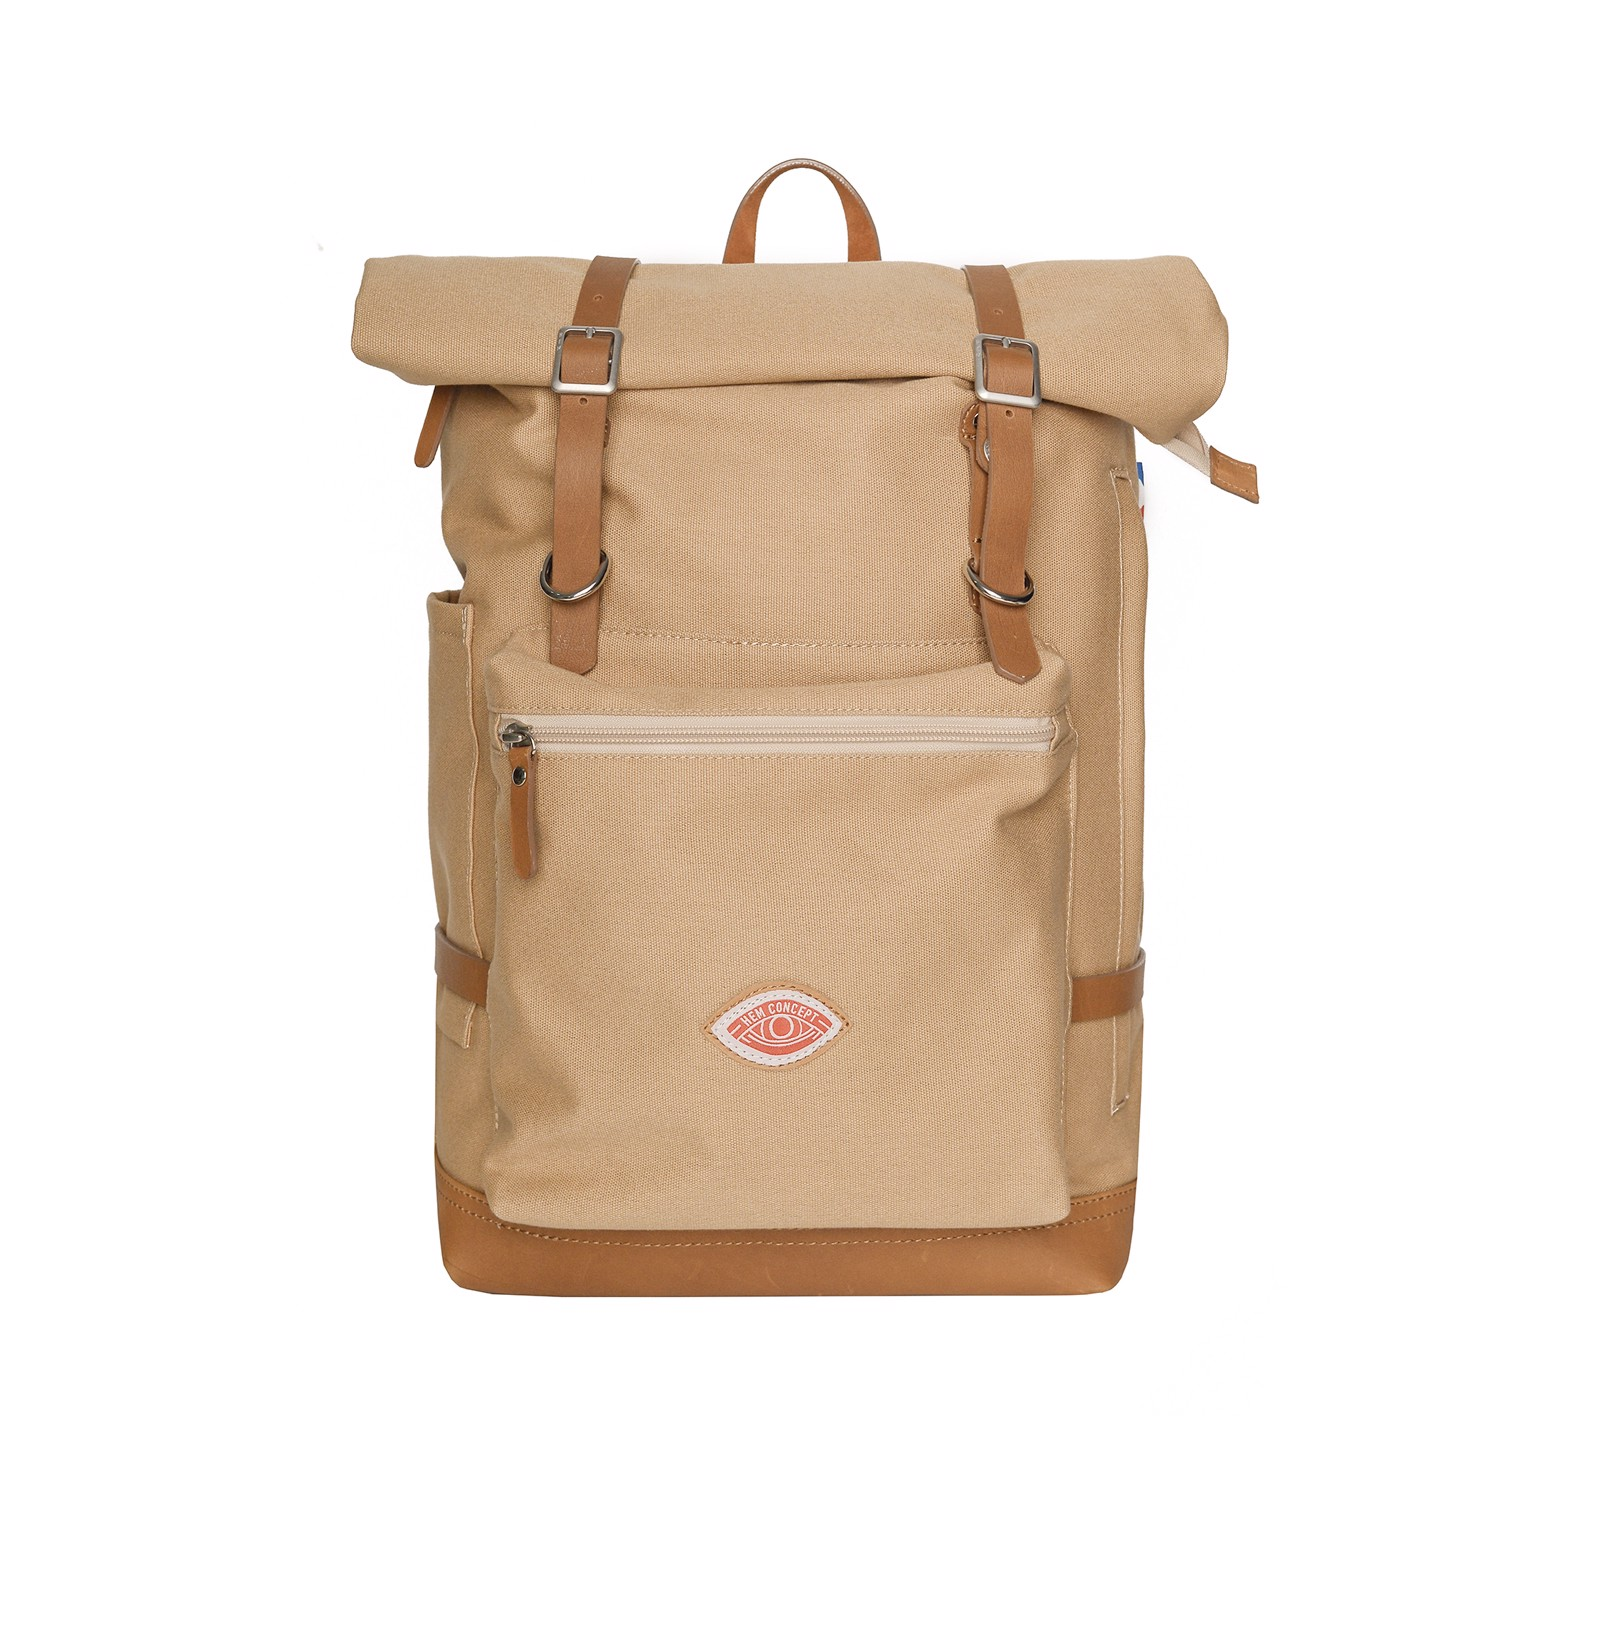 TRAVELLER - BEIGE TAN